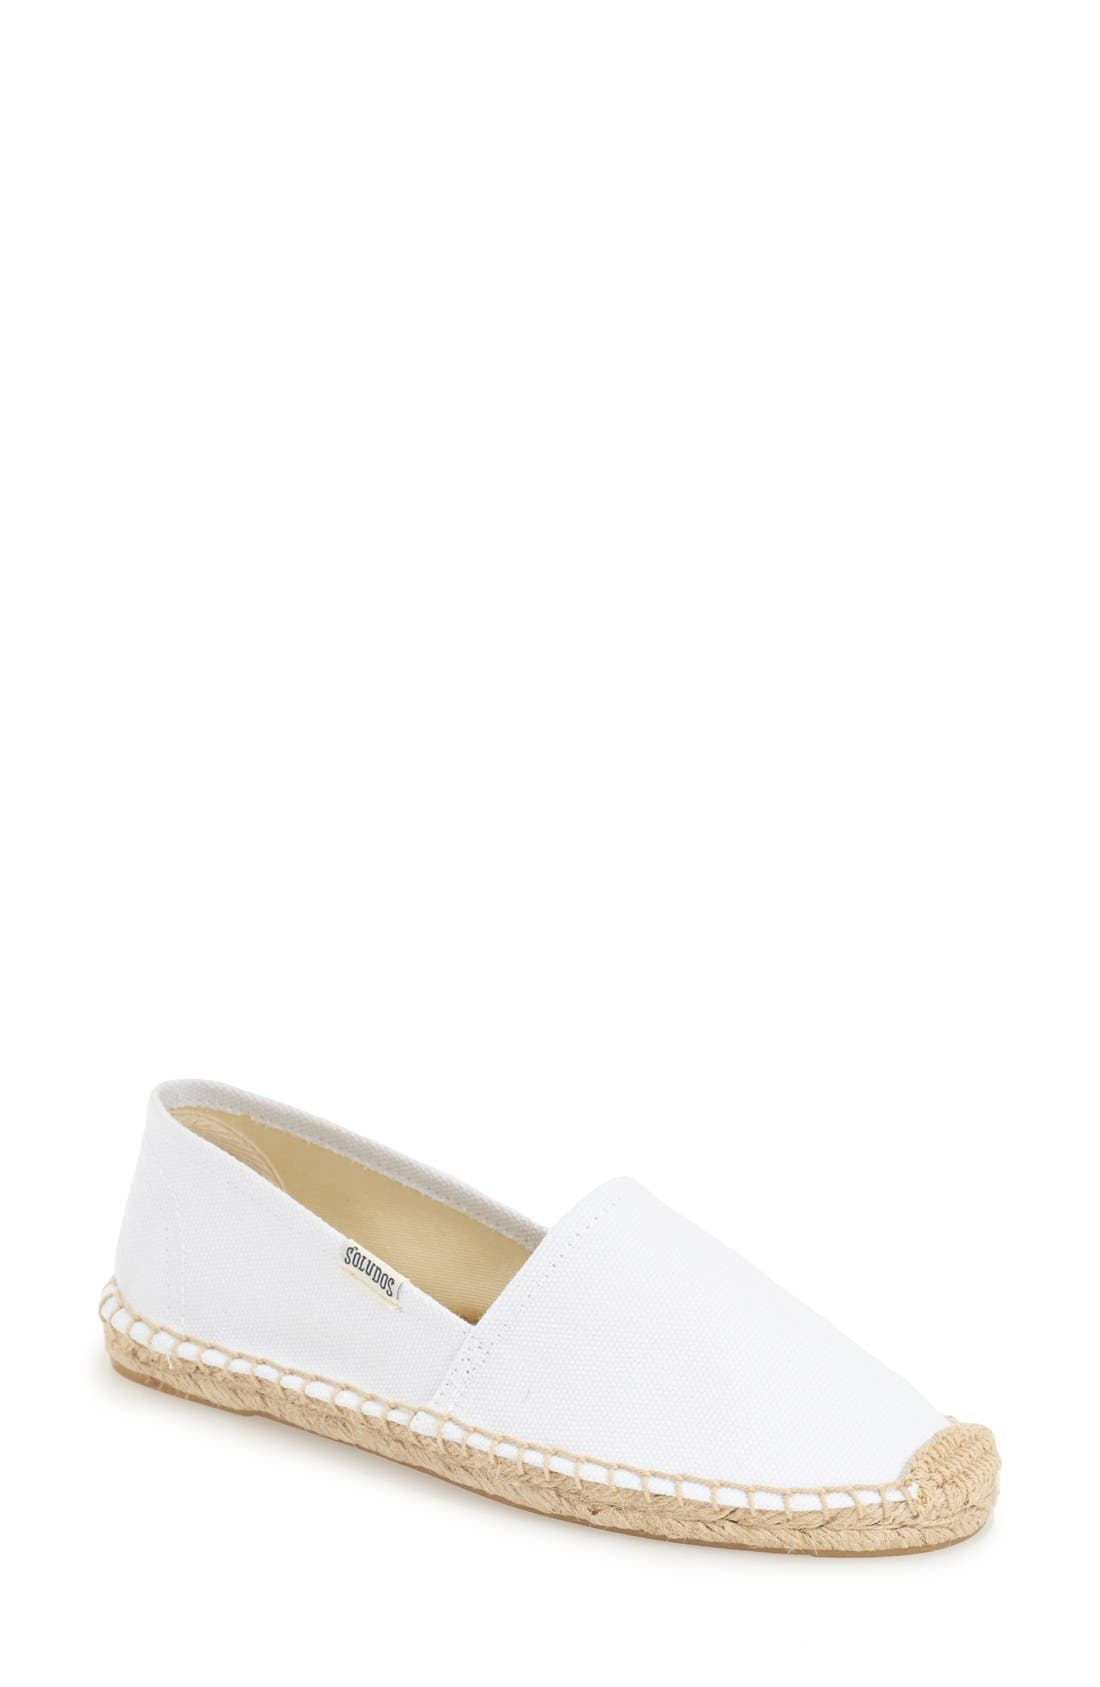 Main Image - Soludos 'Original Dali' Espadrille Slip-On ...